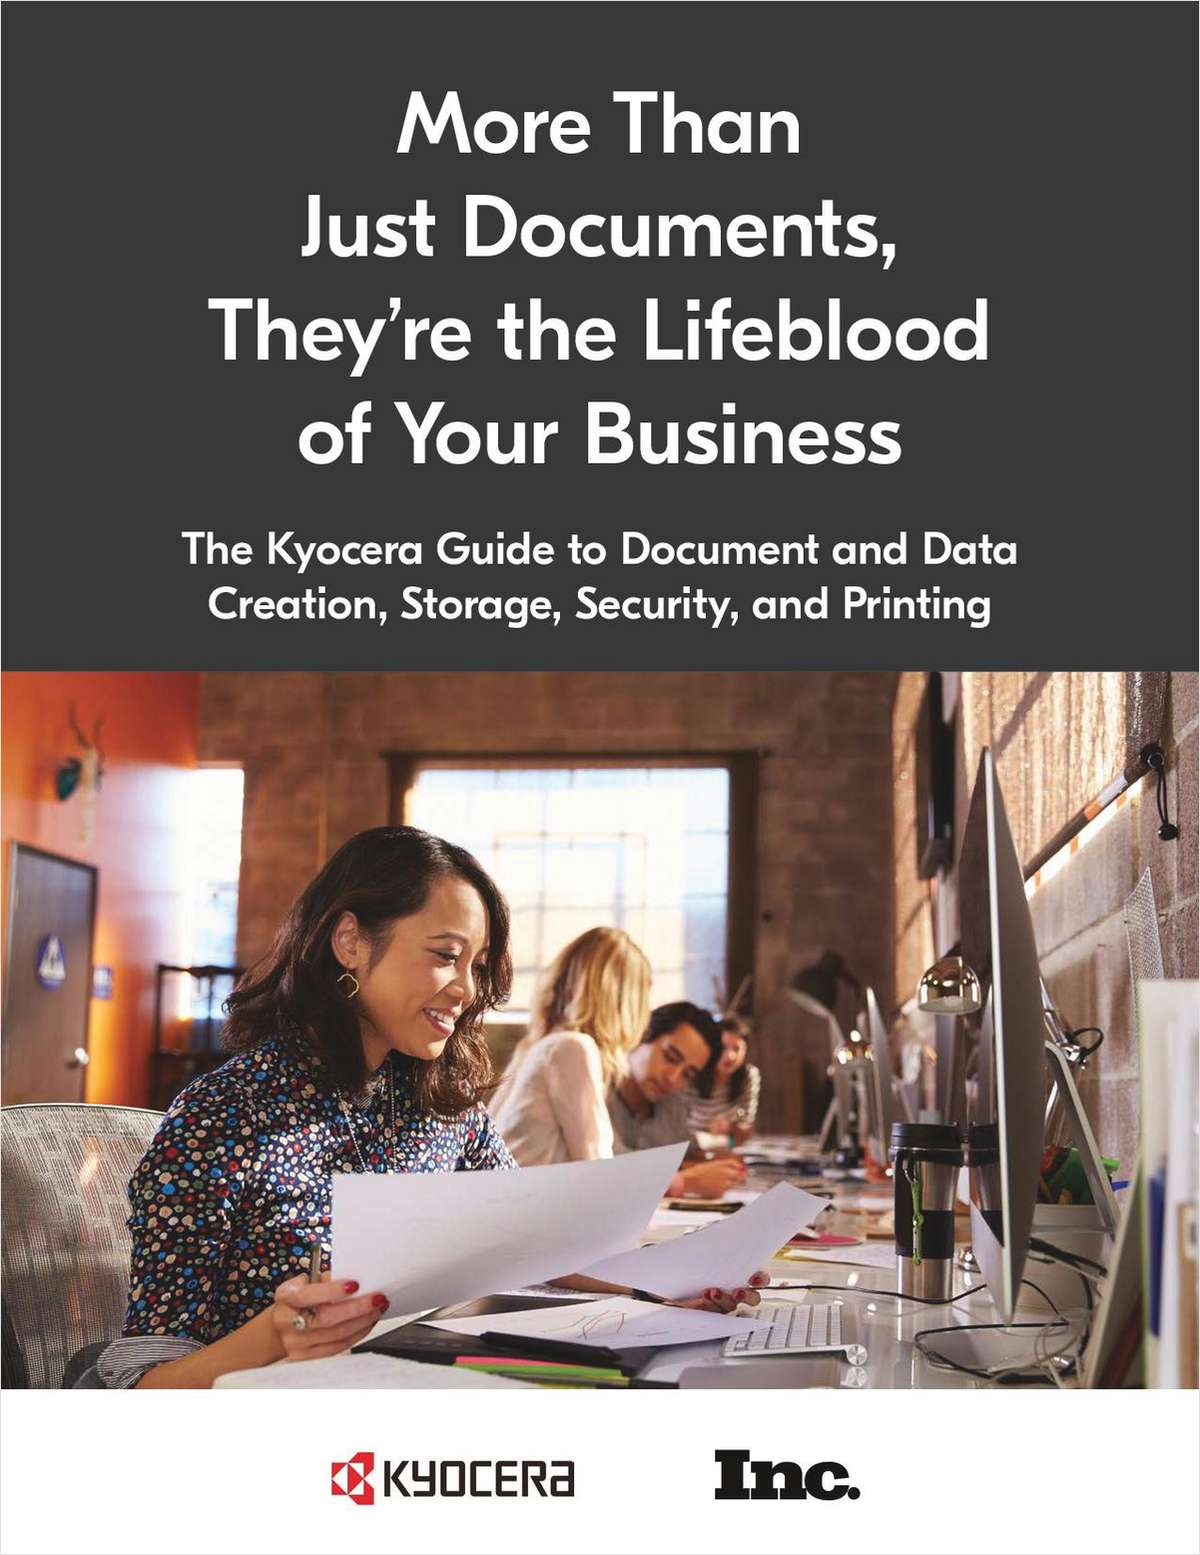 The Kyocera Guide to Documents and Data Creation, Storage, Security, and Printing